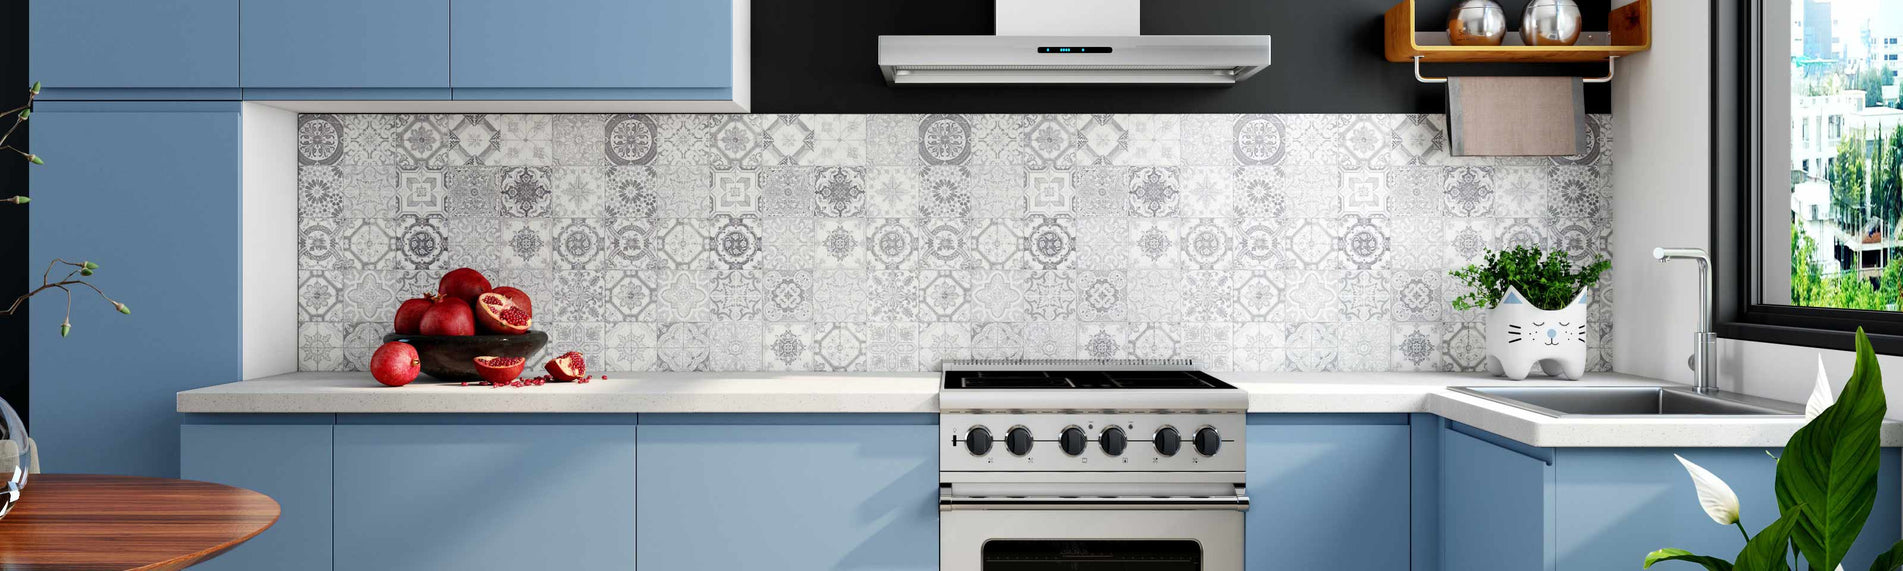 kitchen image for tiles catalogue